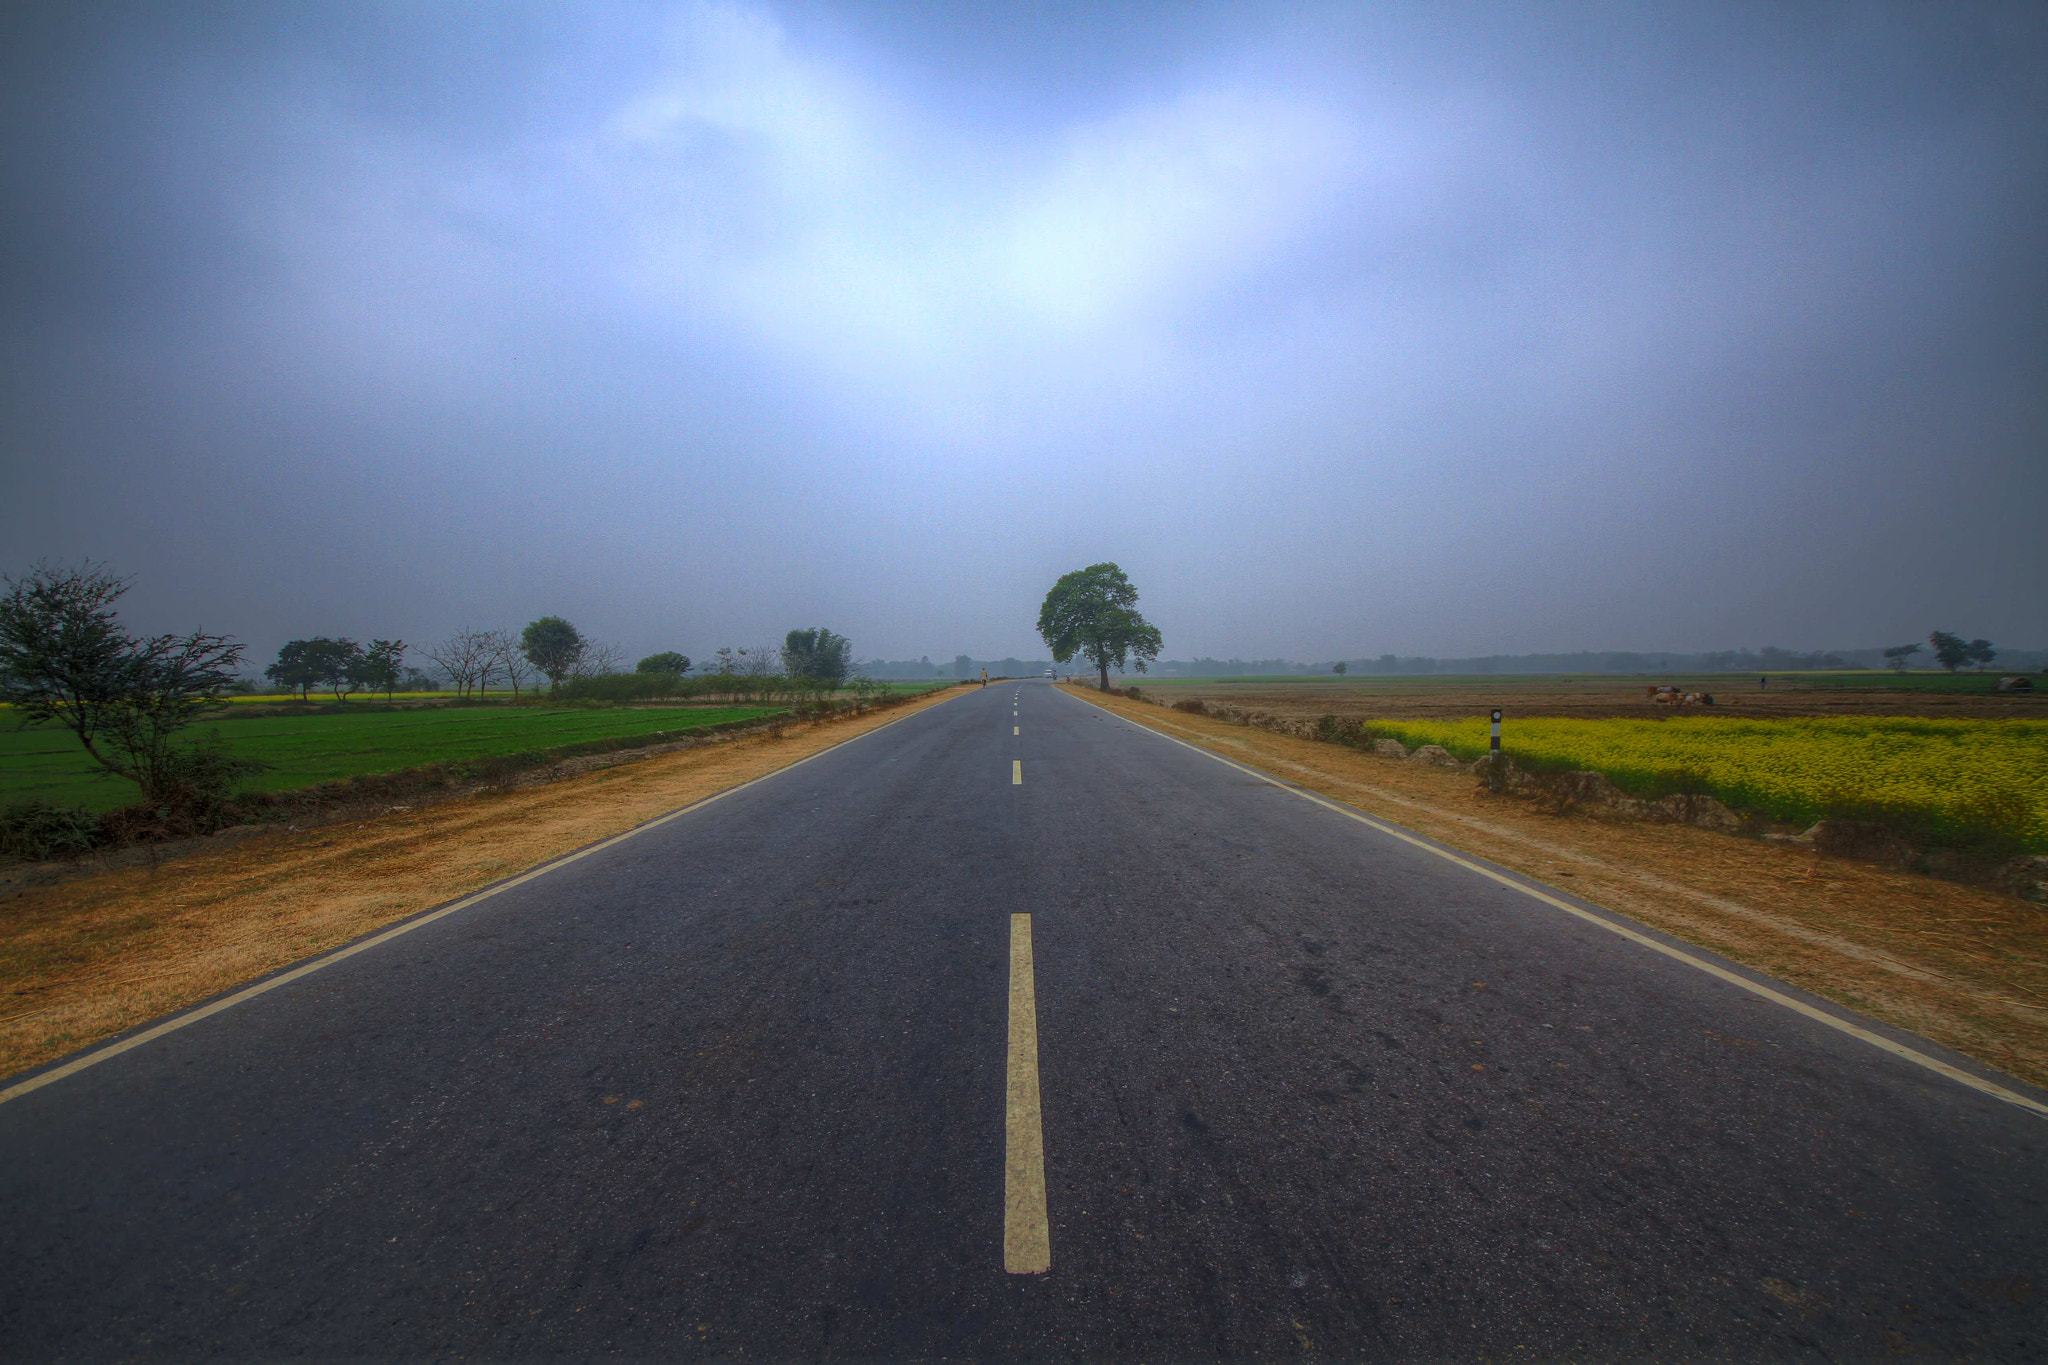 Photograph Road of Bihar state by Amar Kumar on 500px